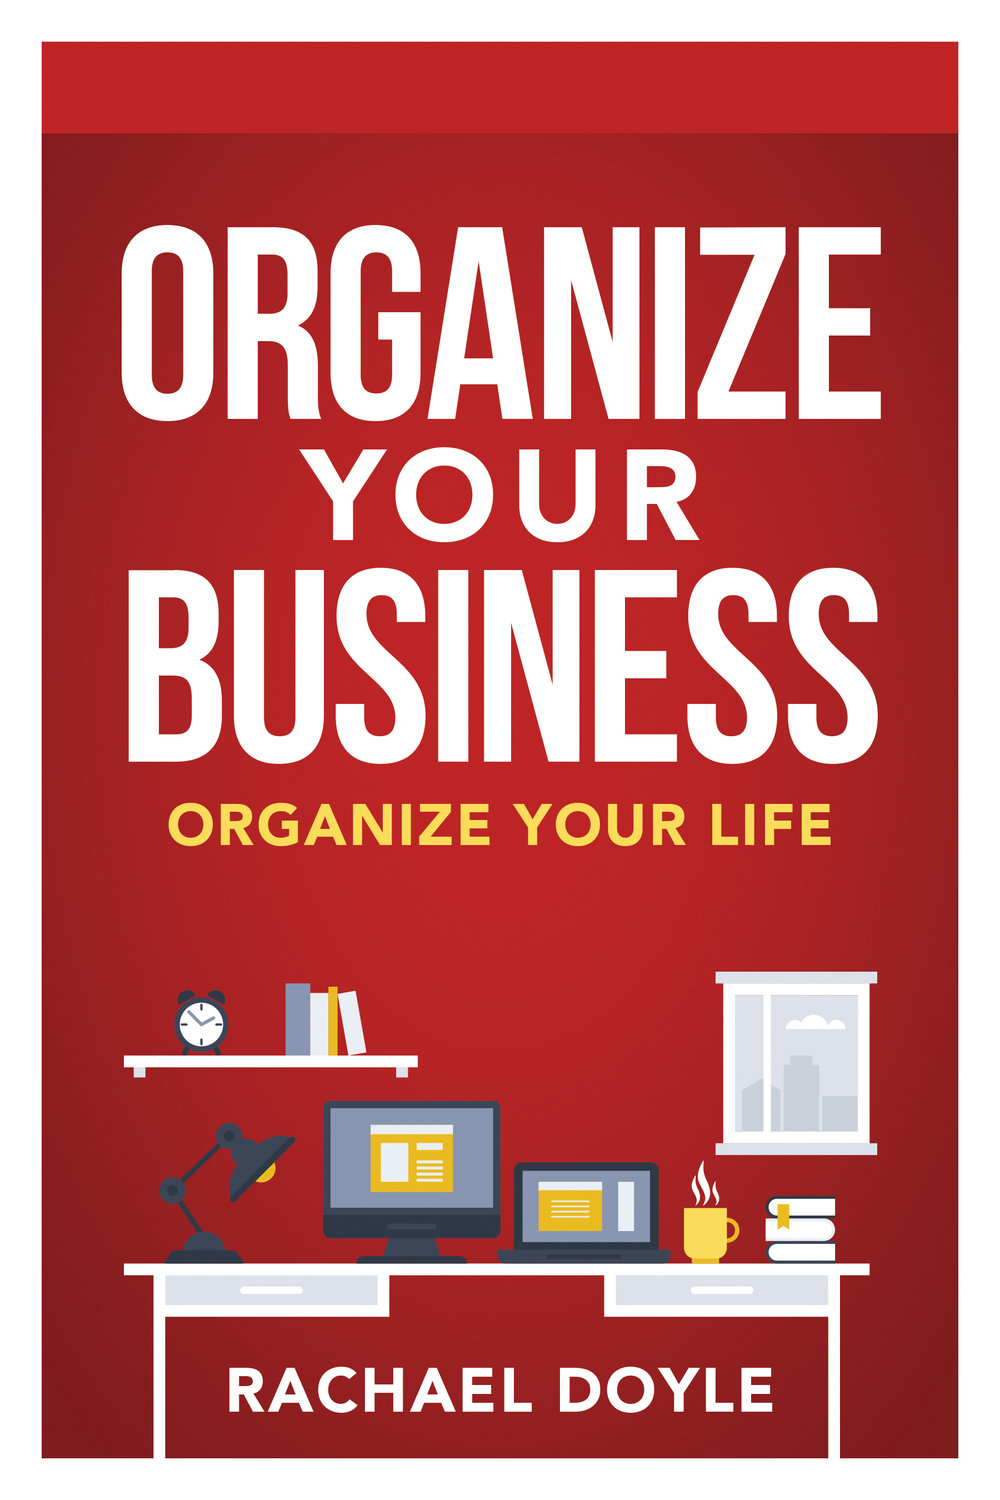 Organize_Your_Business.jpg